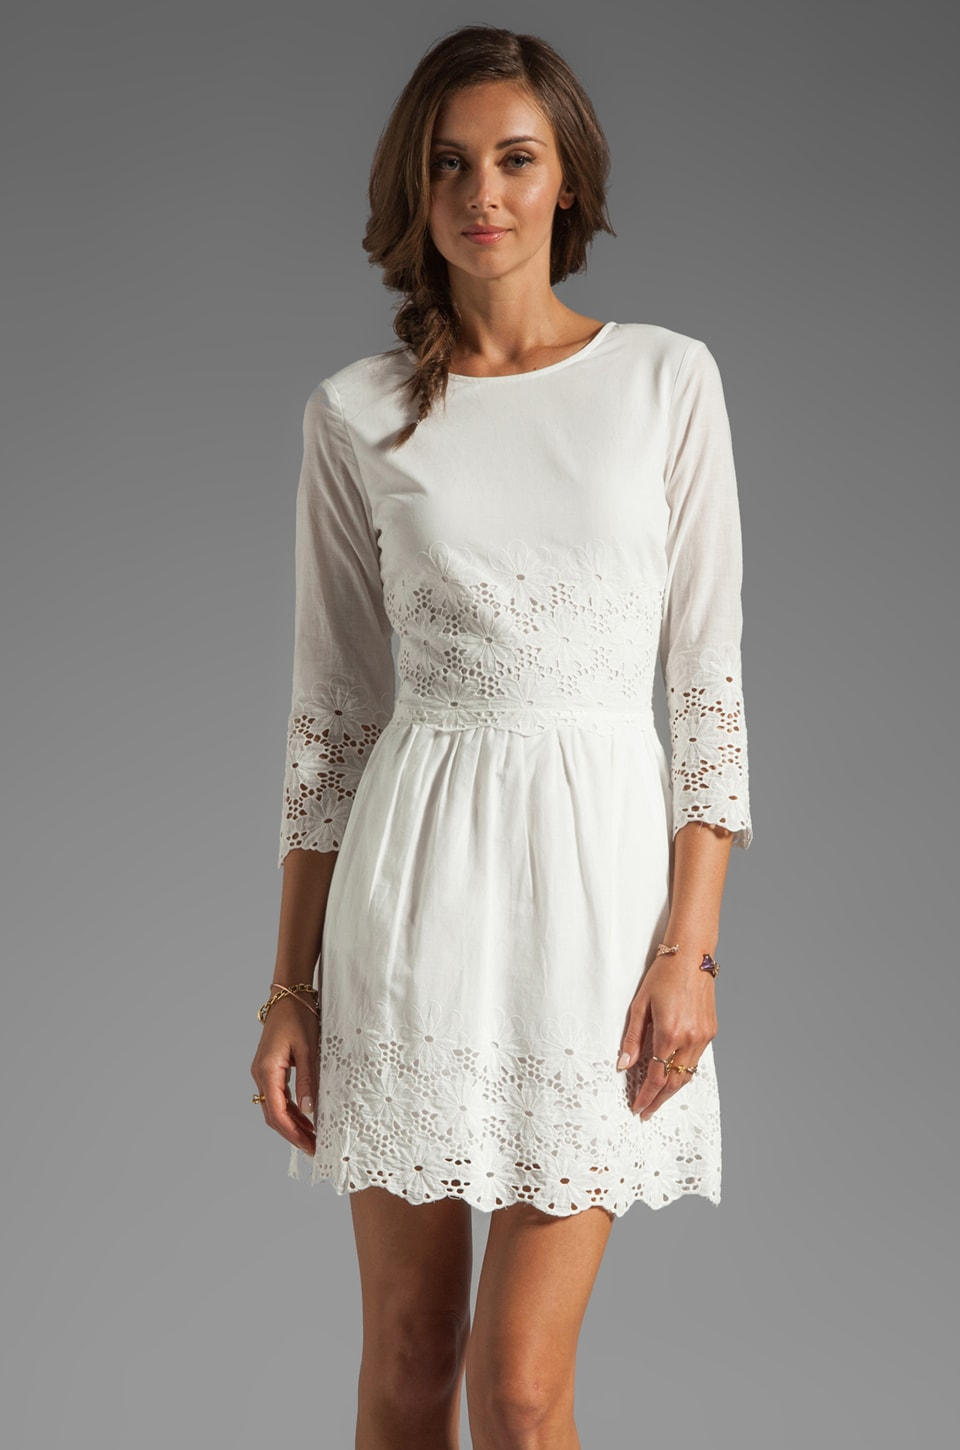 Dolce Vita Val Hem Daisy Long Sleeve Dress in White